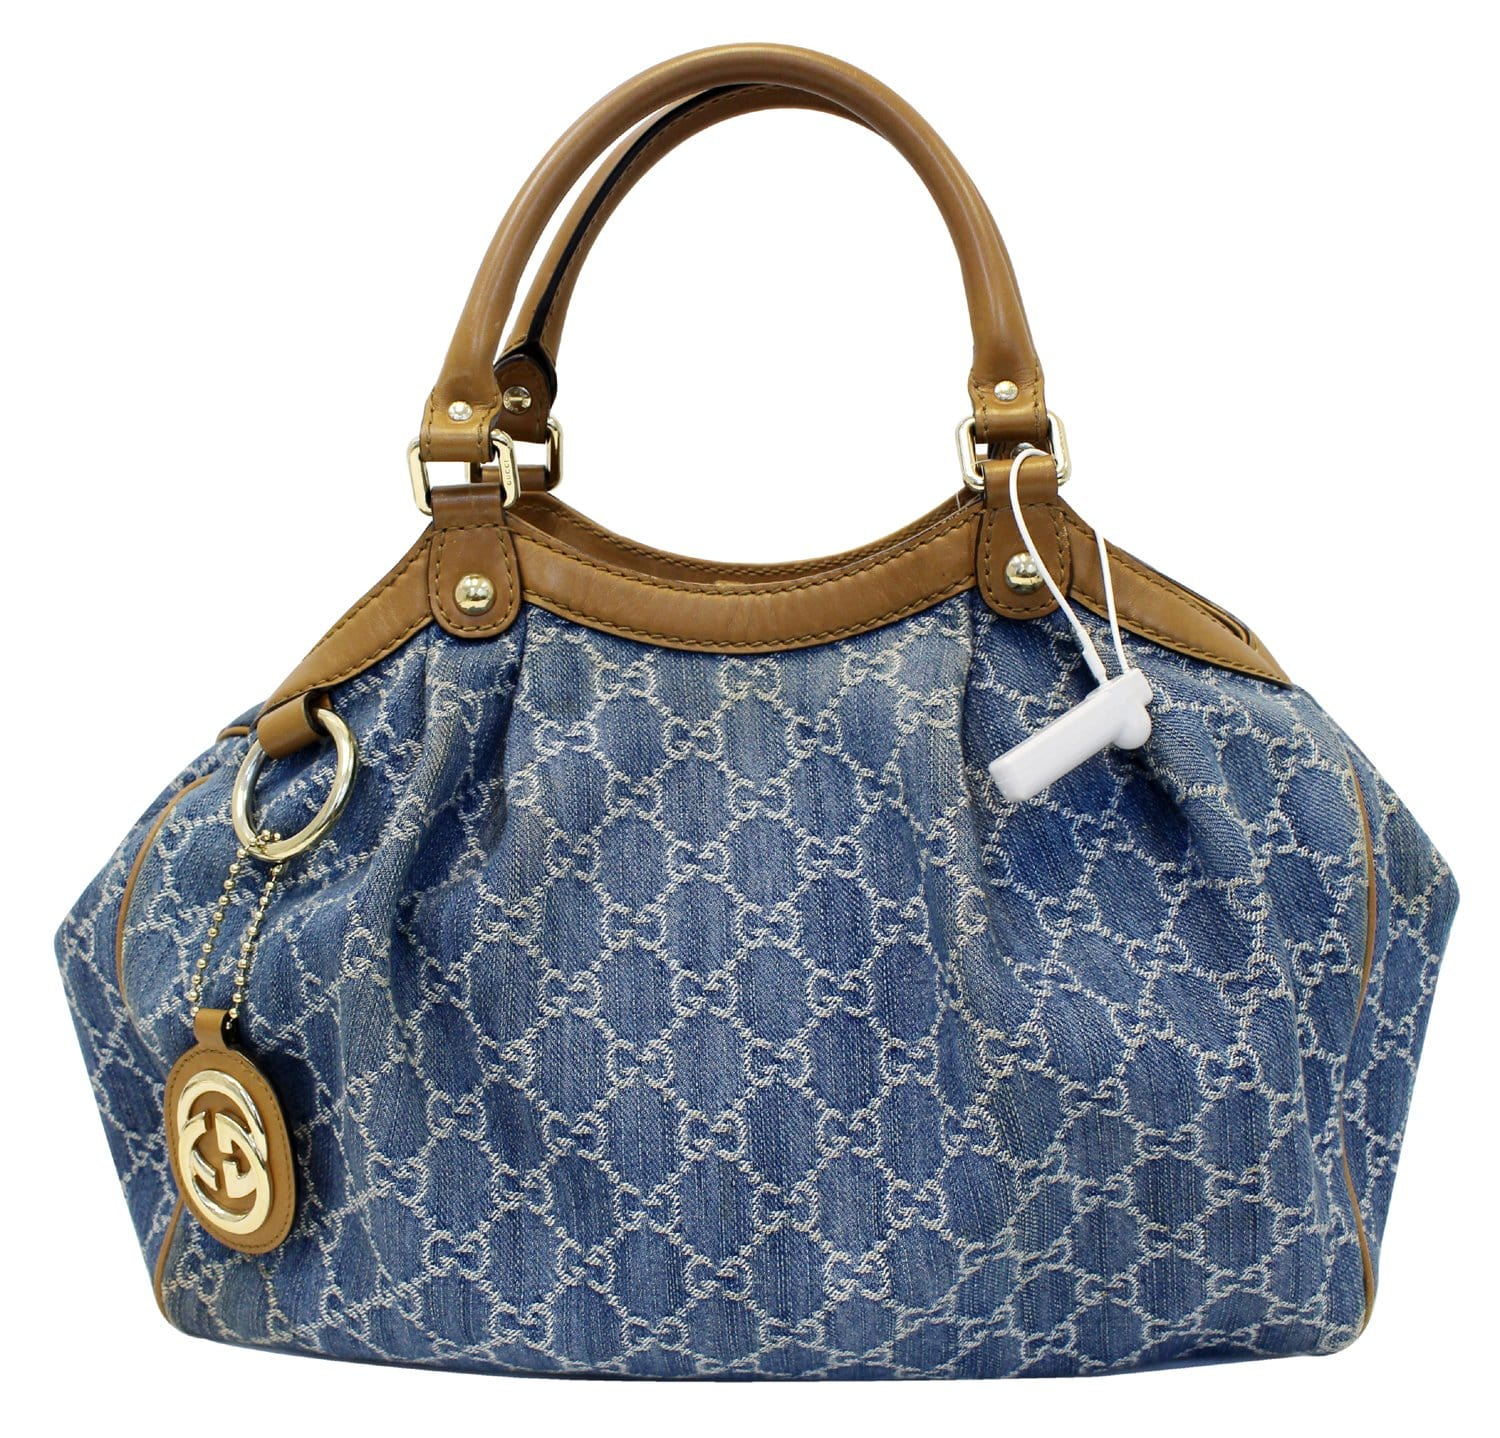 892165487d9a Authentic GUCCI GG Blue Denim Sukey Tote Shoulder Bag Gucci Sukey 211944  TT1800